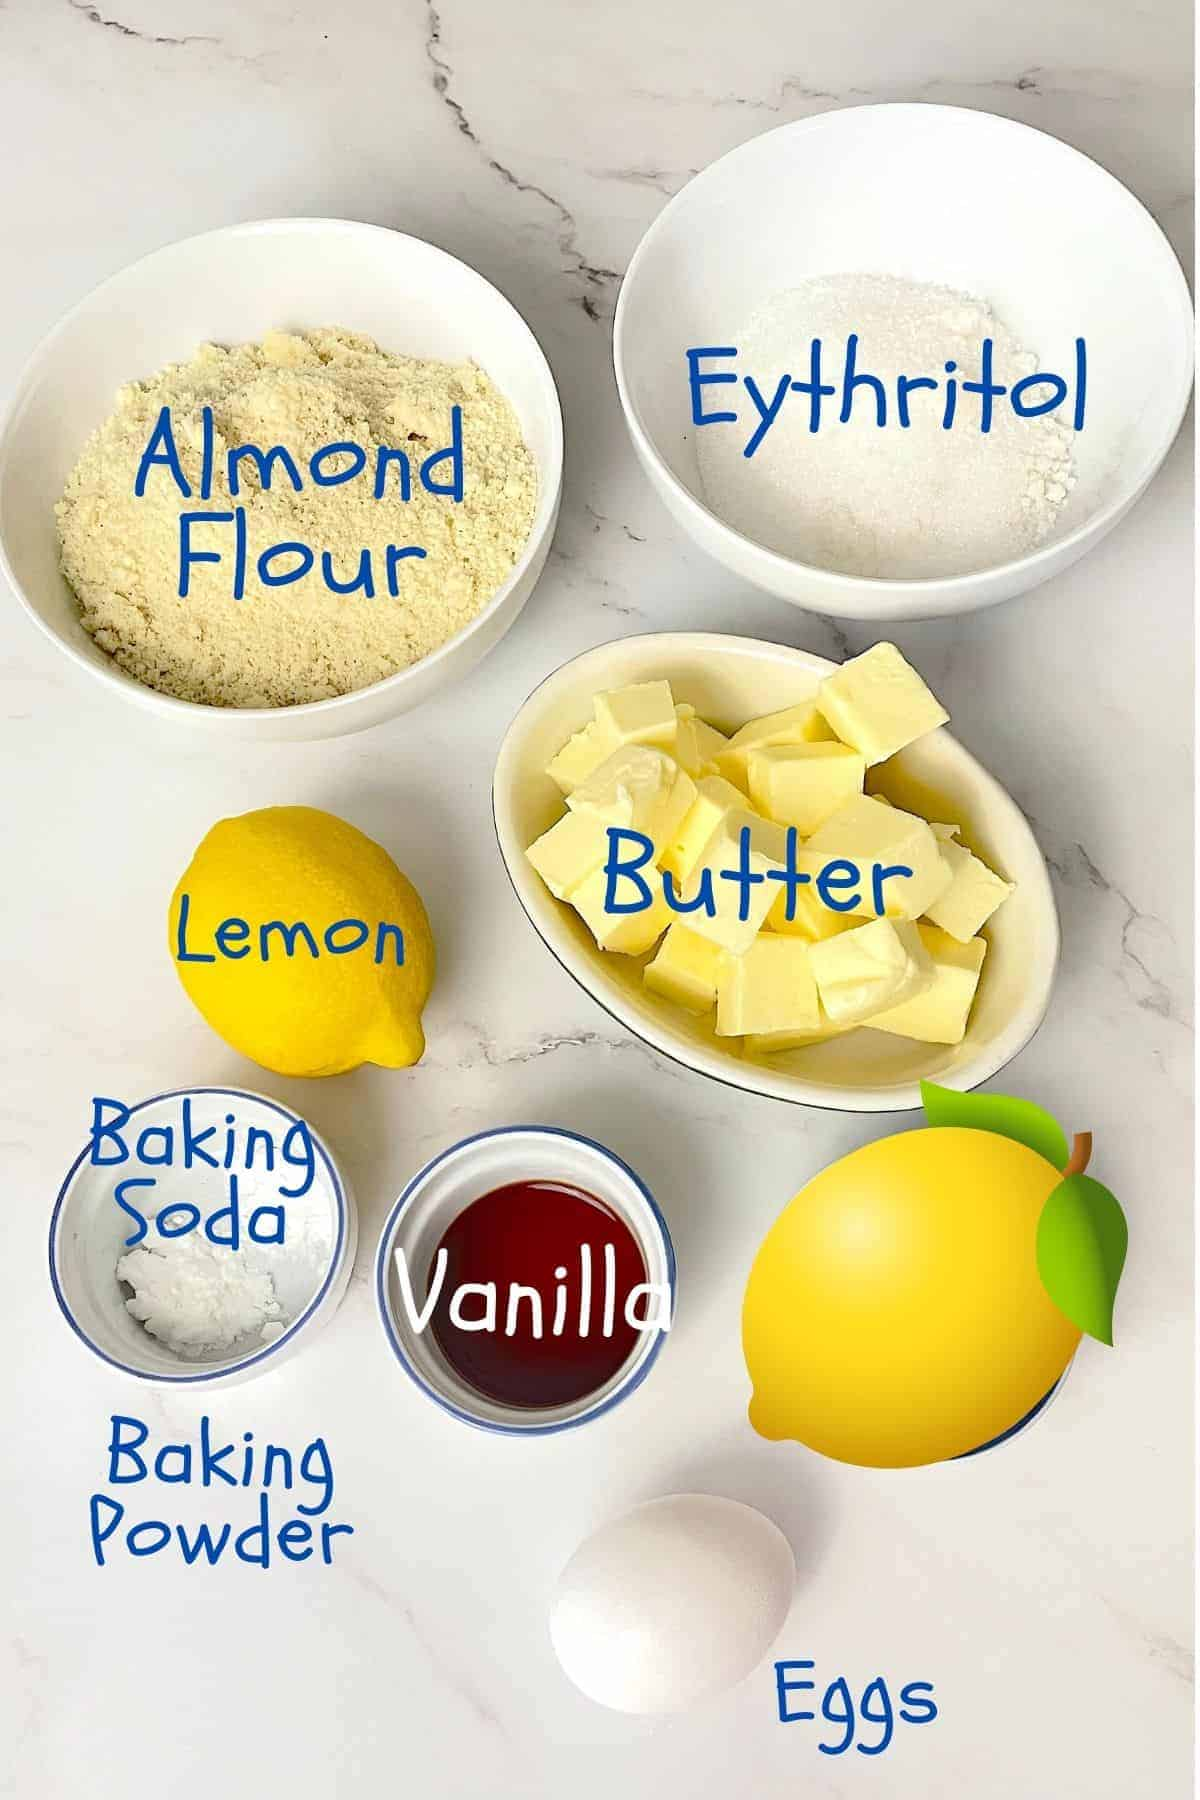 ingredients used for the recipe